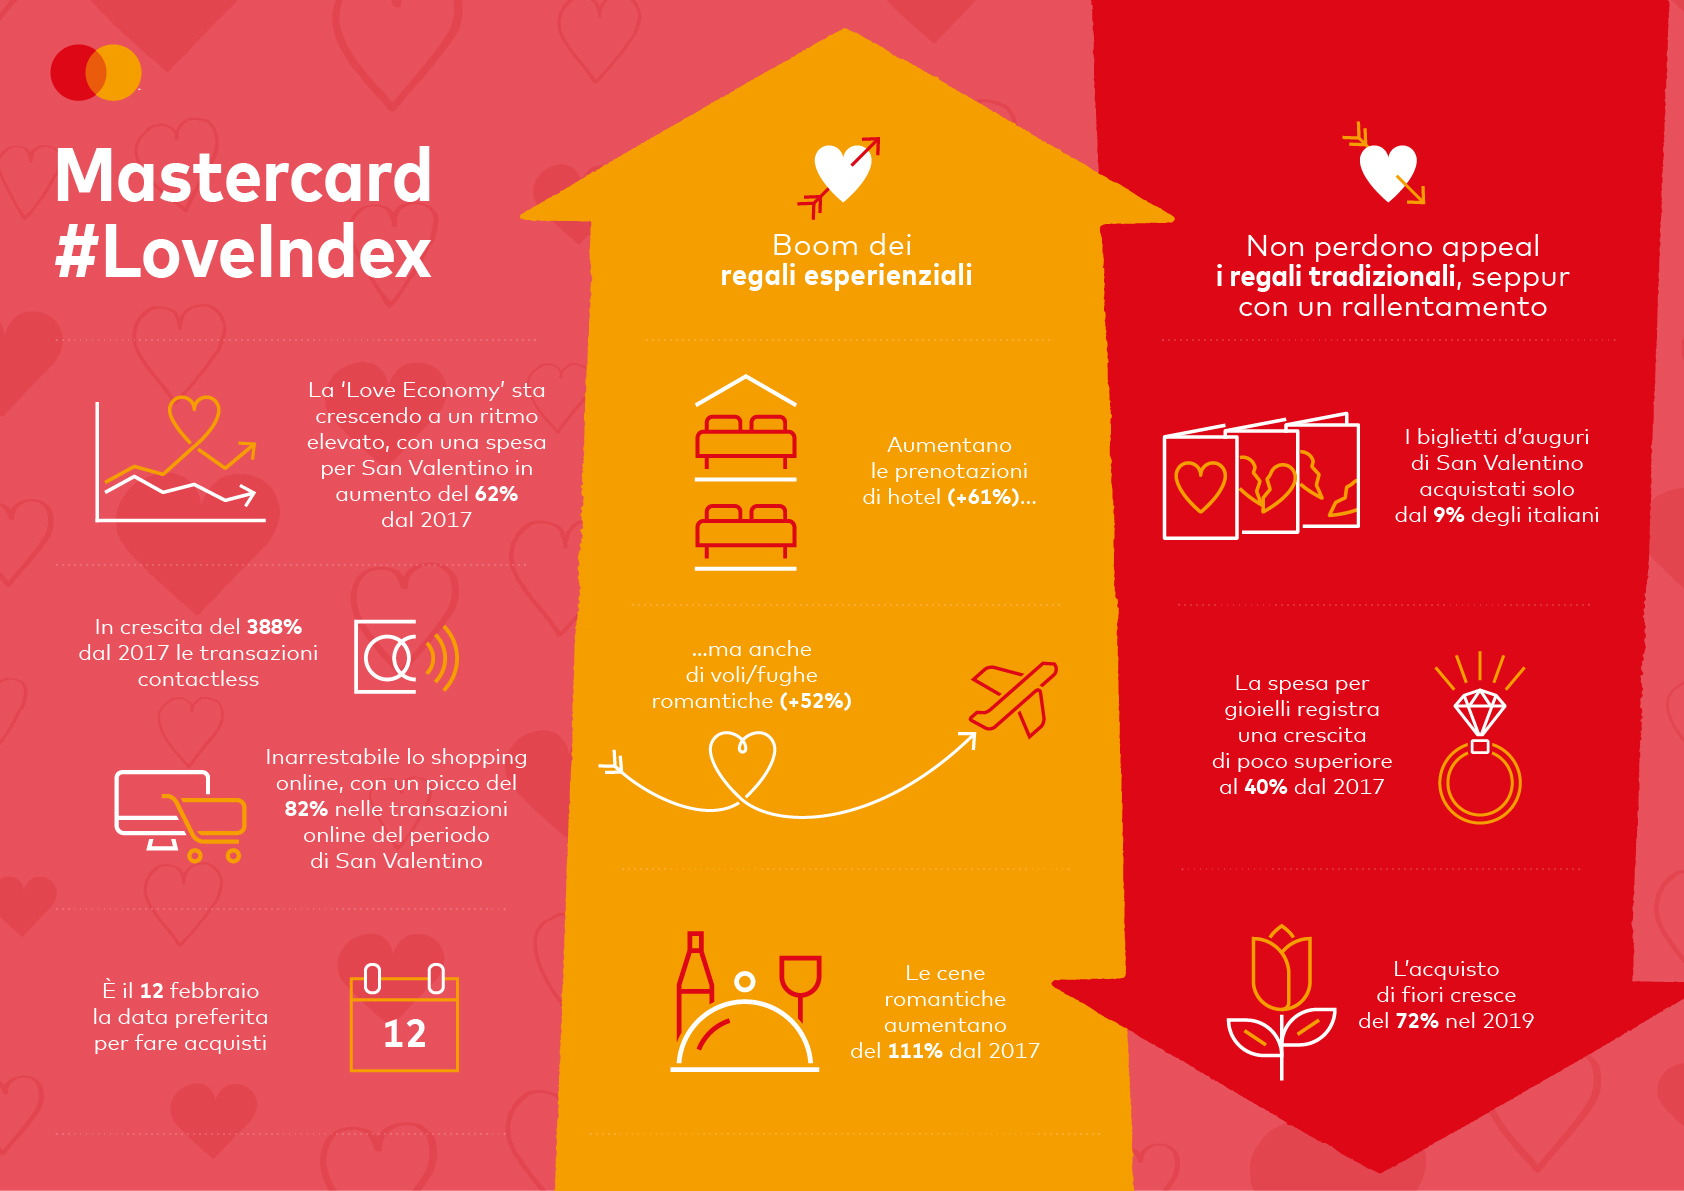 Mastercard_Love Index 2020_Revision_1_Global_ITA